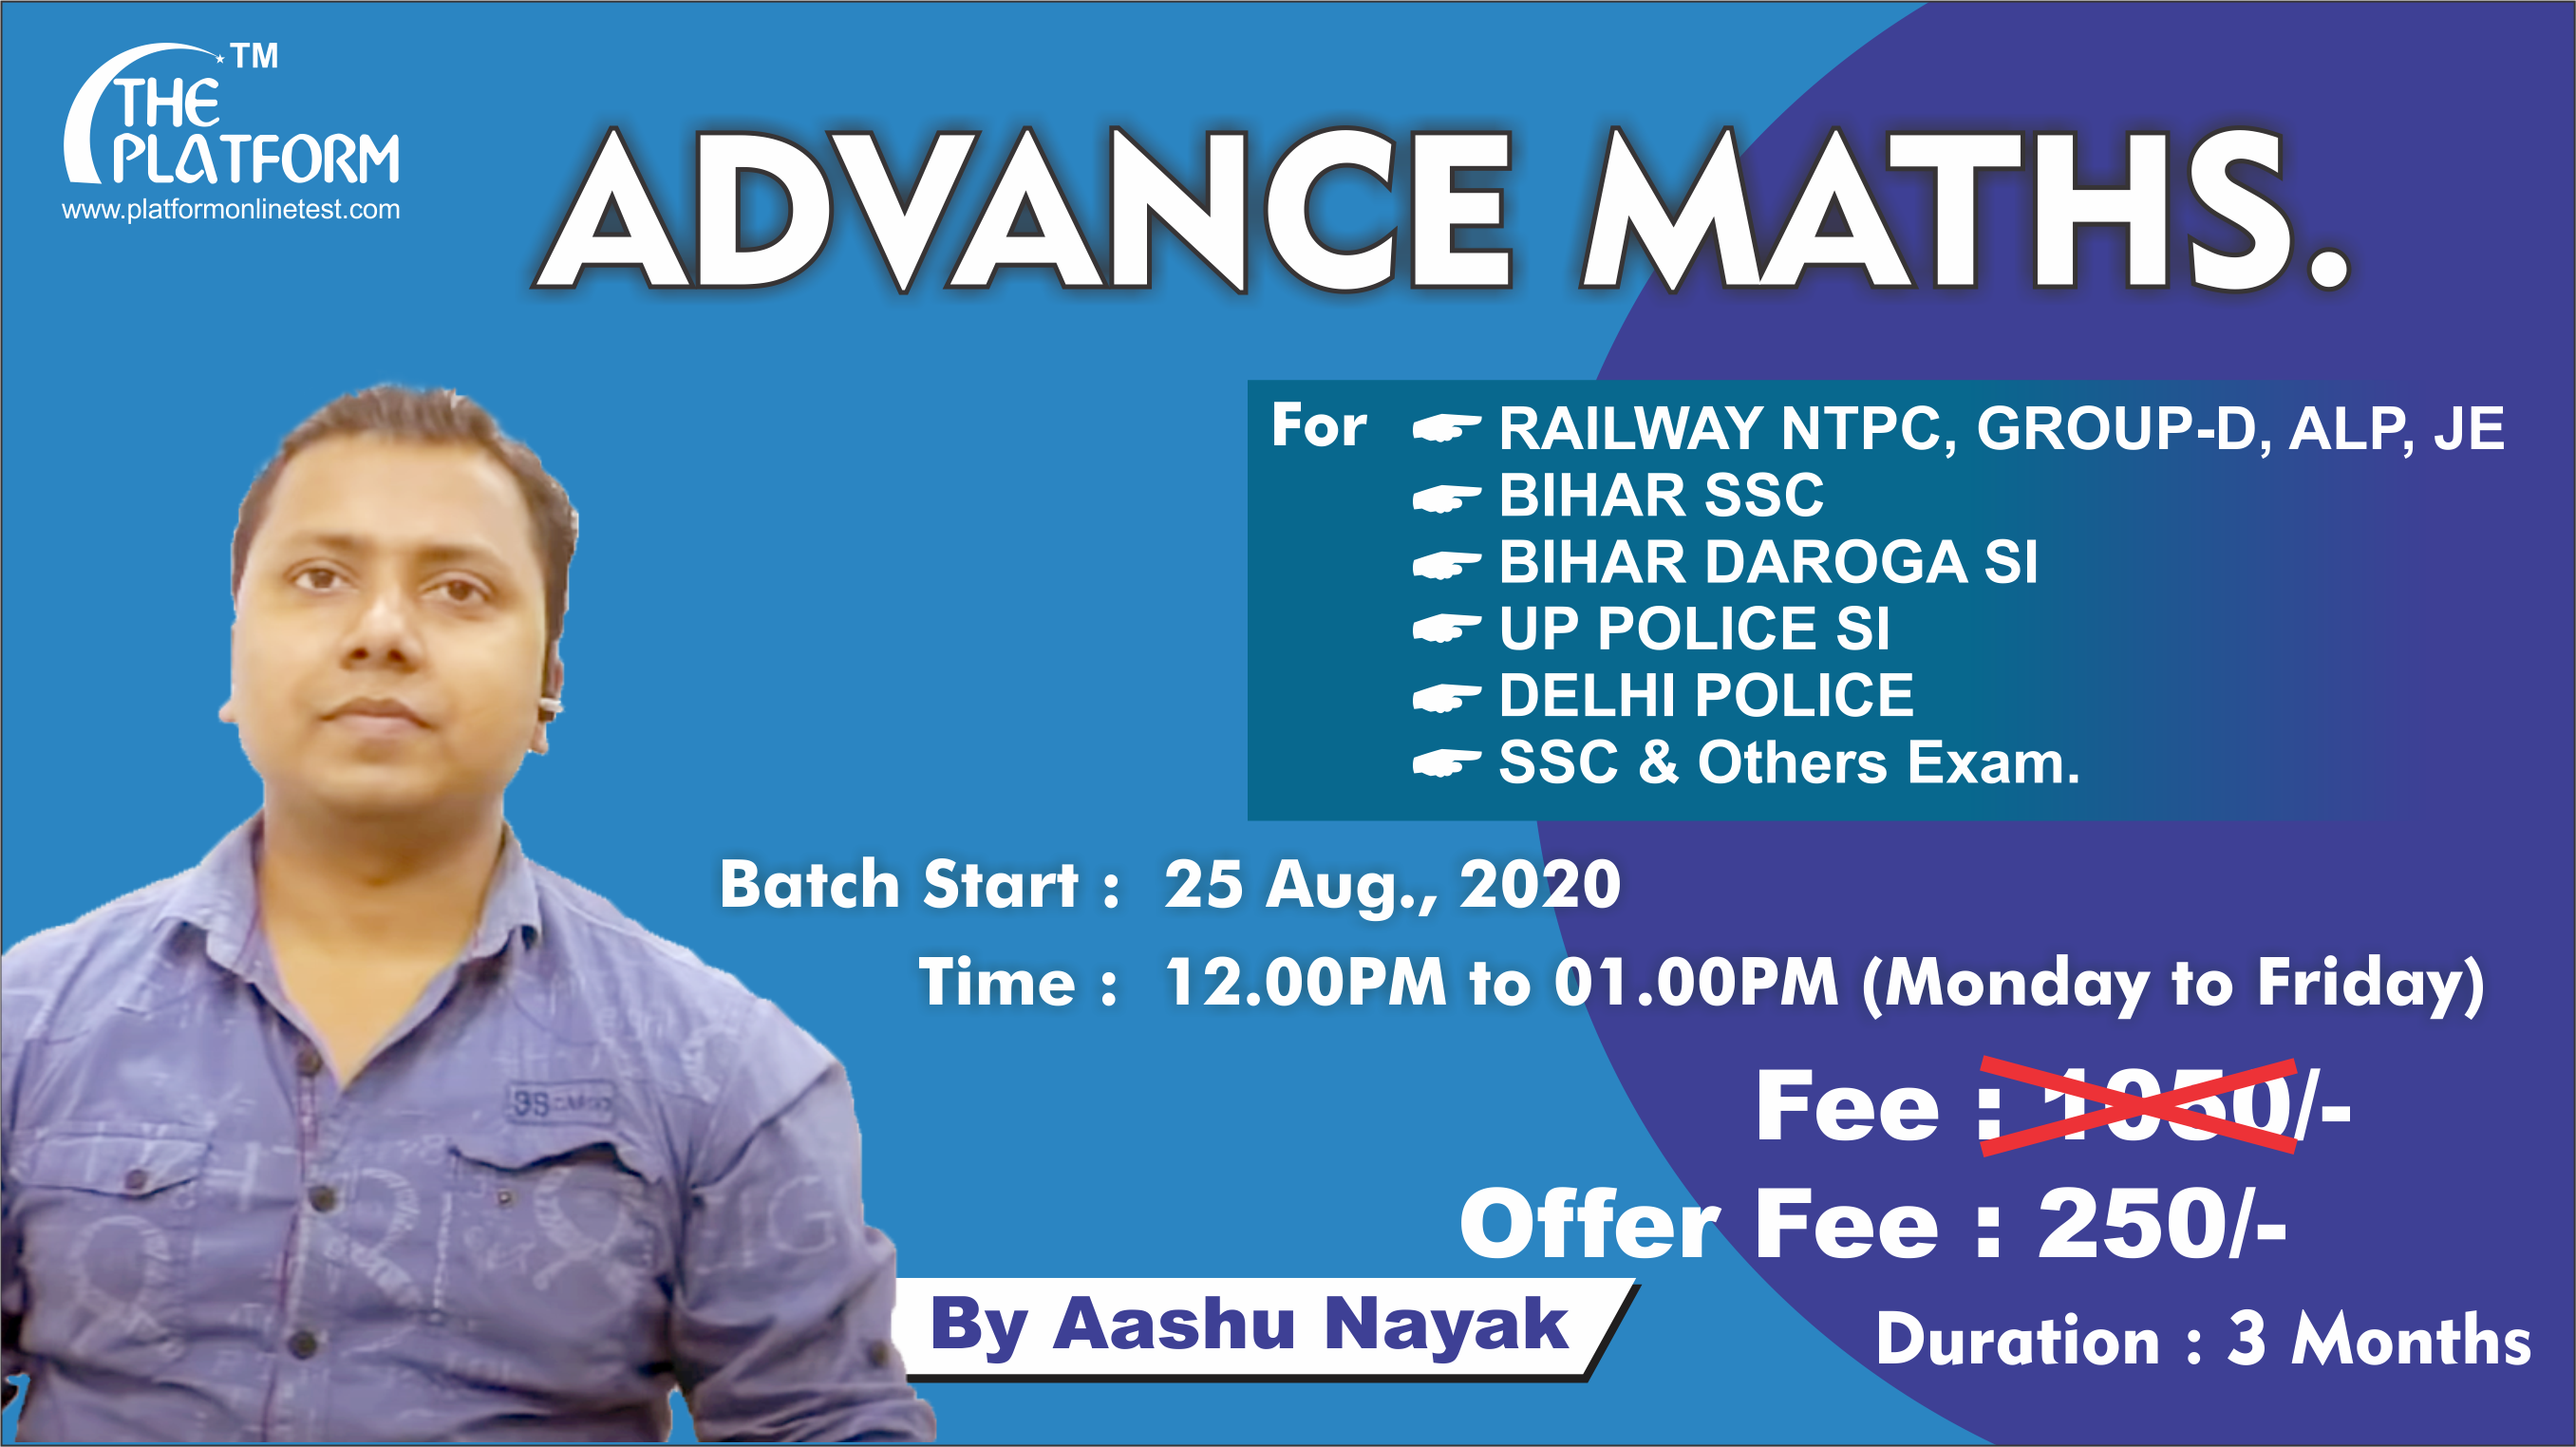 30-ADVANCE MATHS. By Aashu Nayak, Session-01